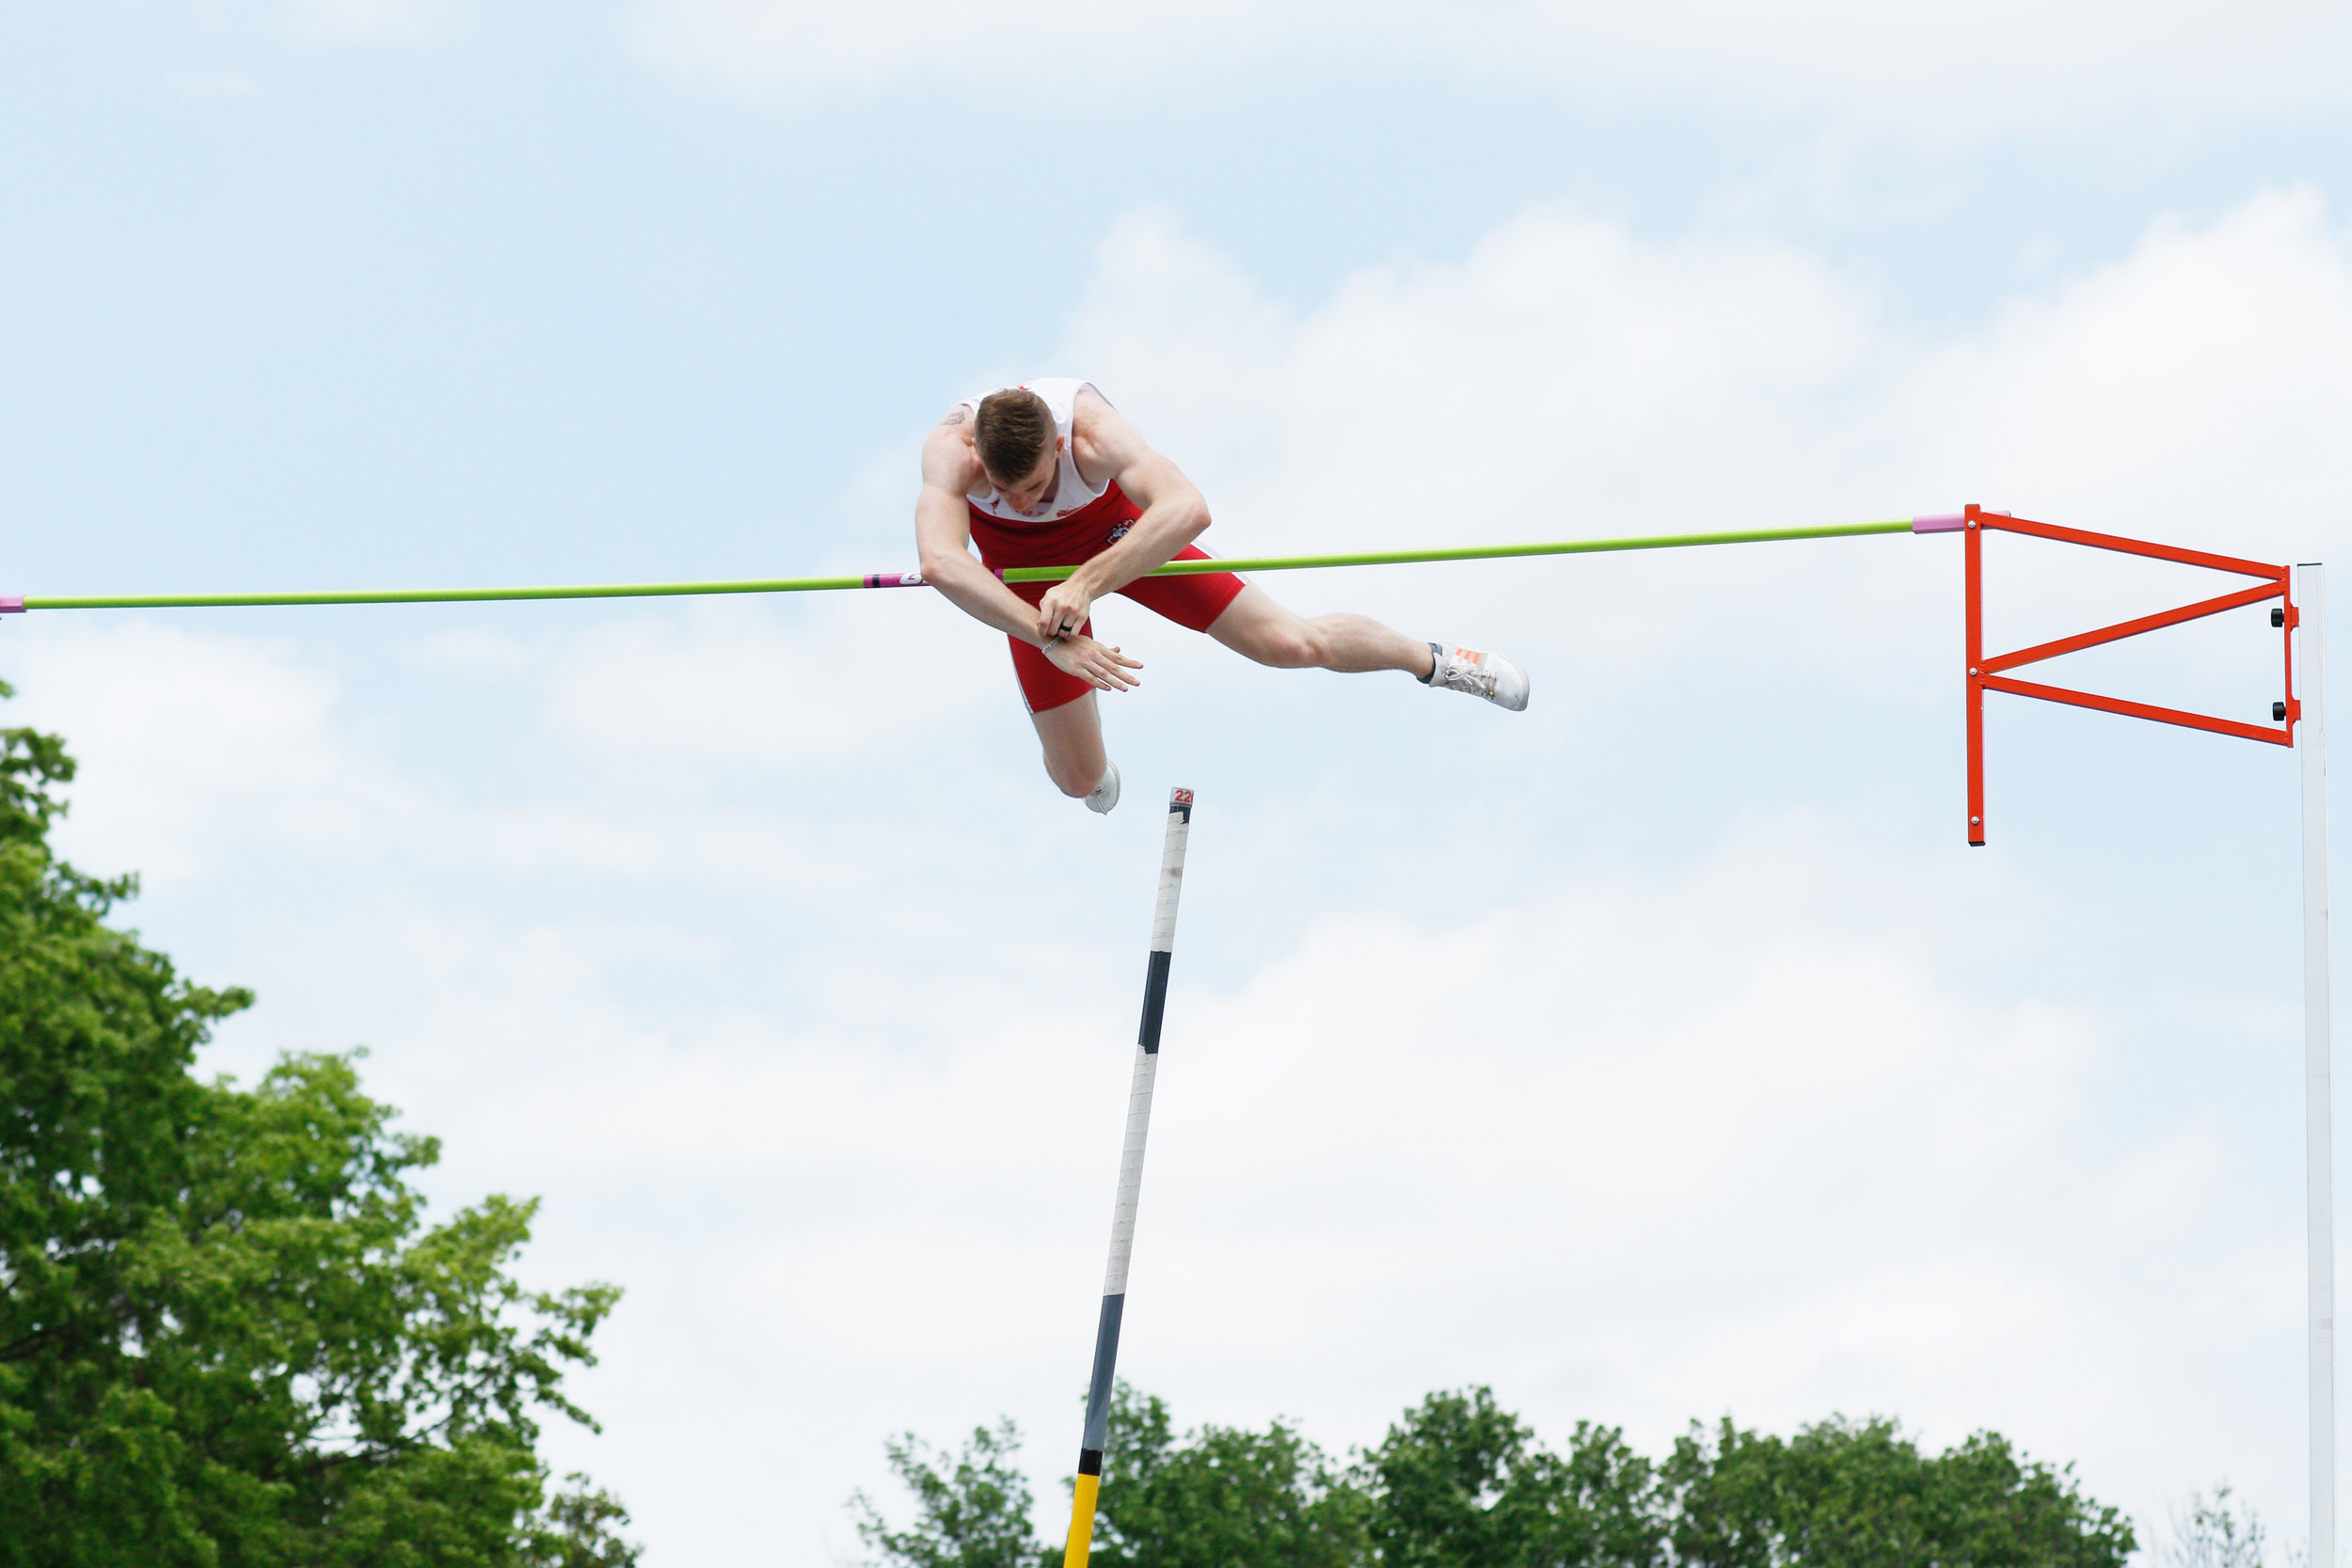 BILL POWELL/South Dakota Athletics Park Hill graduate and South Dakota junior Chris Nilsen, shown clearing the bar at a meet earlier this year, jumped 19 feet, 1 inch on Saturday, April 20, to become the world leader in the event, as well as the highest mark in the NCAA.